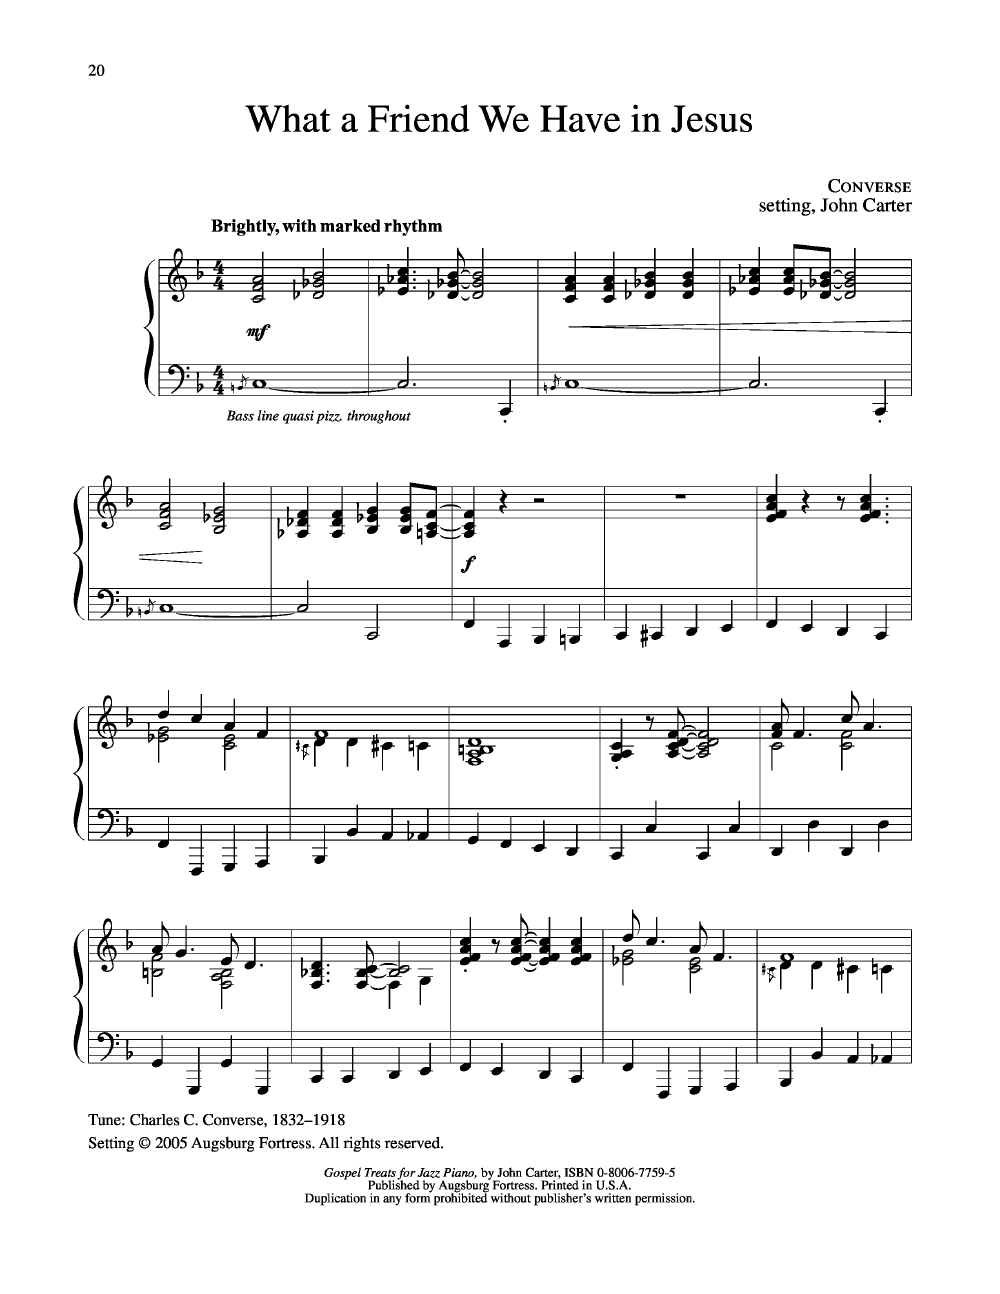 Free Piano Sheet Music, Lessons & Resources - 8notes.com